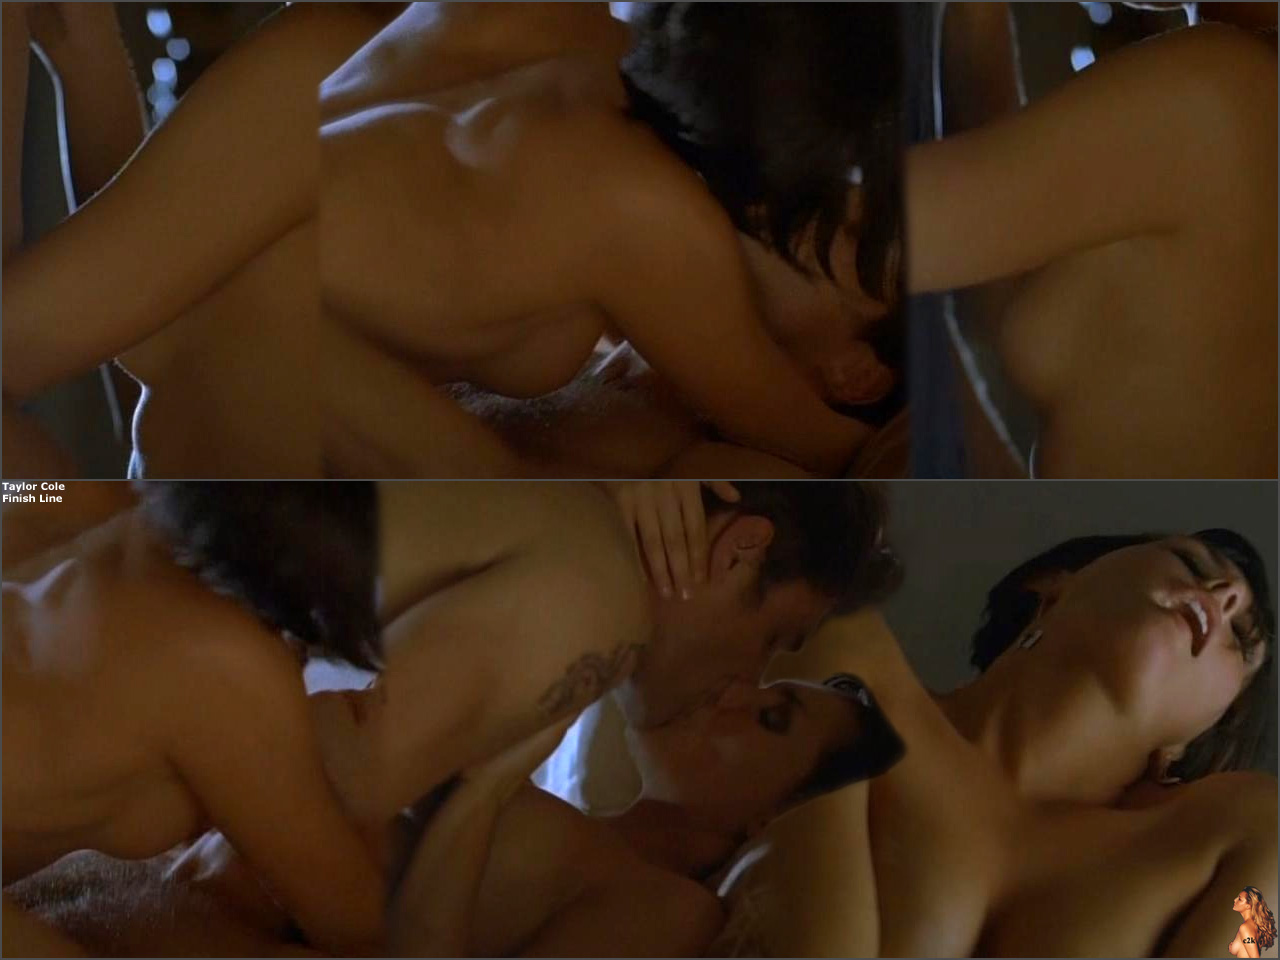 Understand Naked fake images of Taylor cole